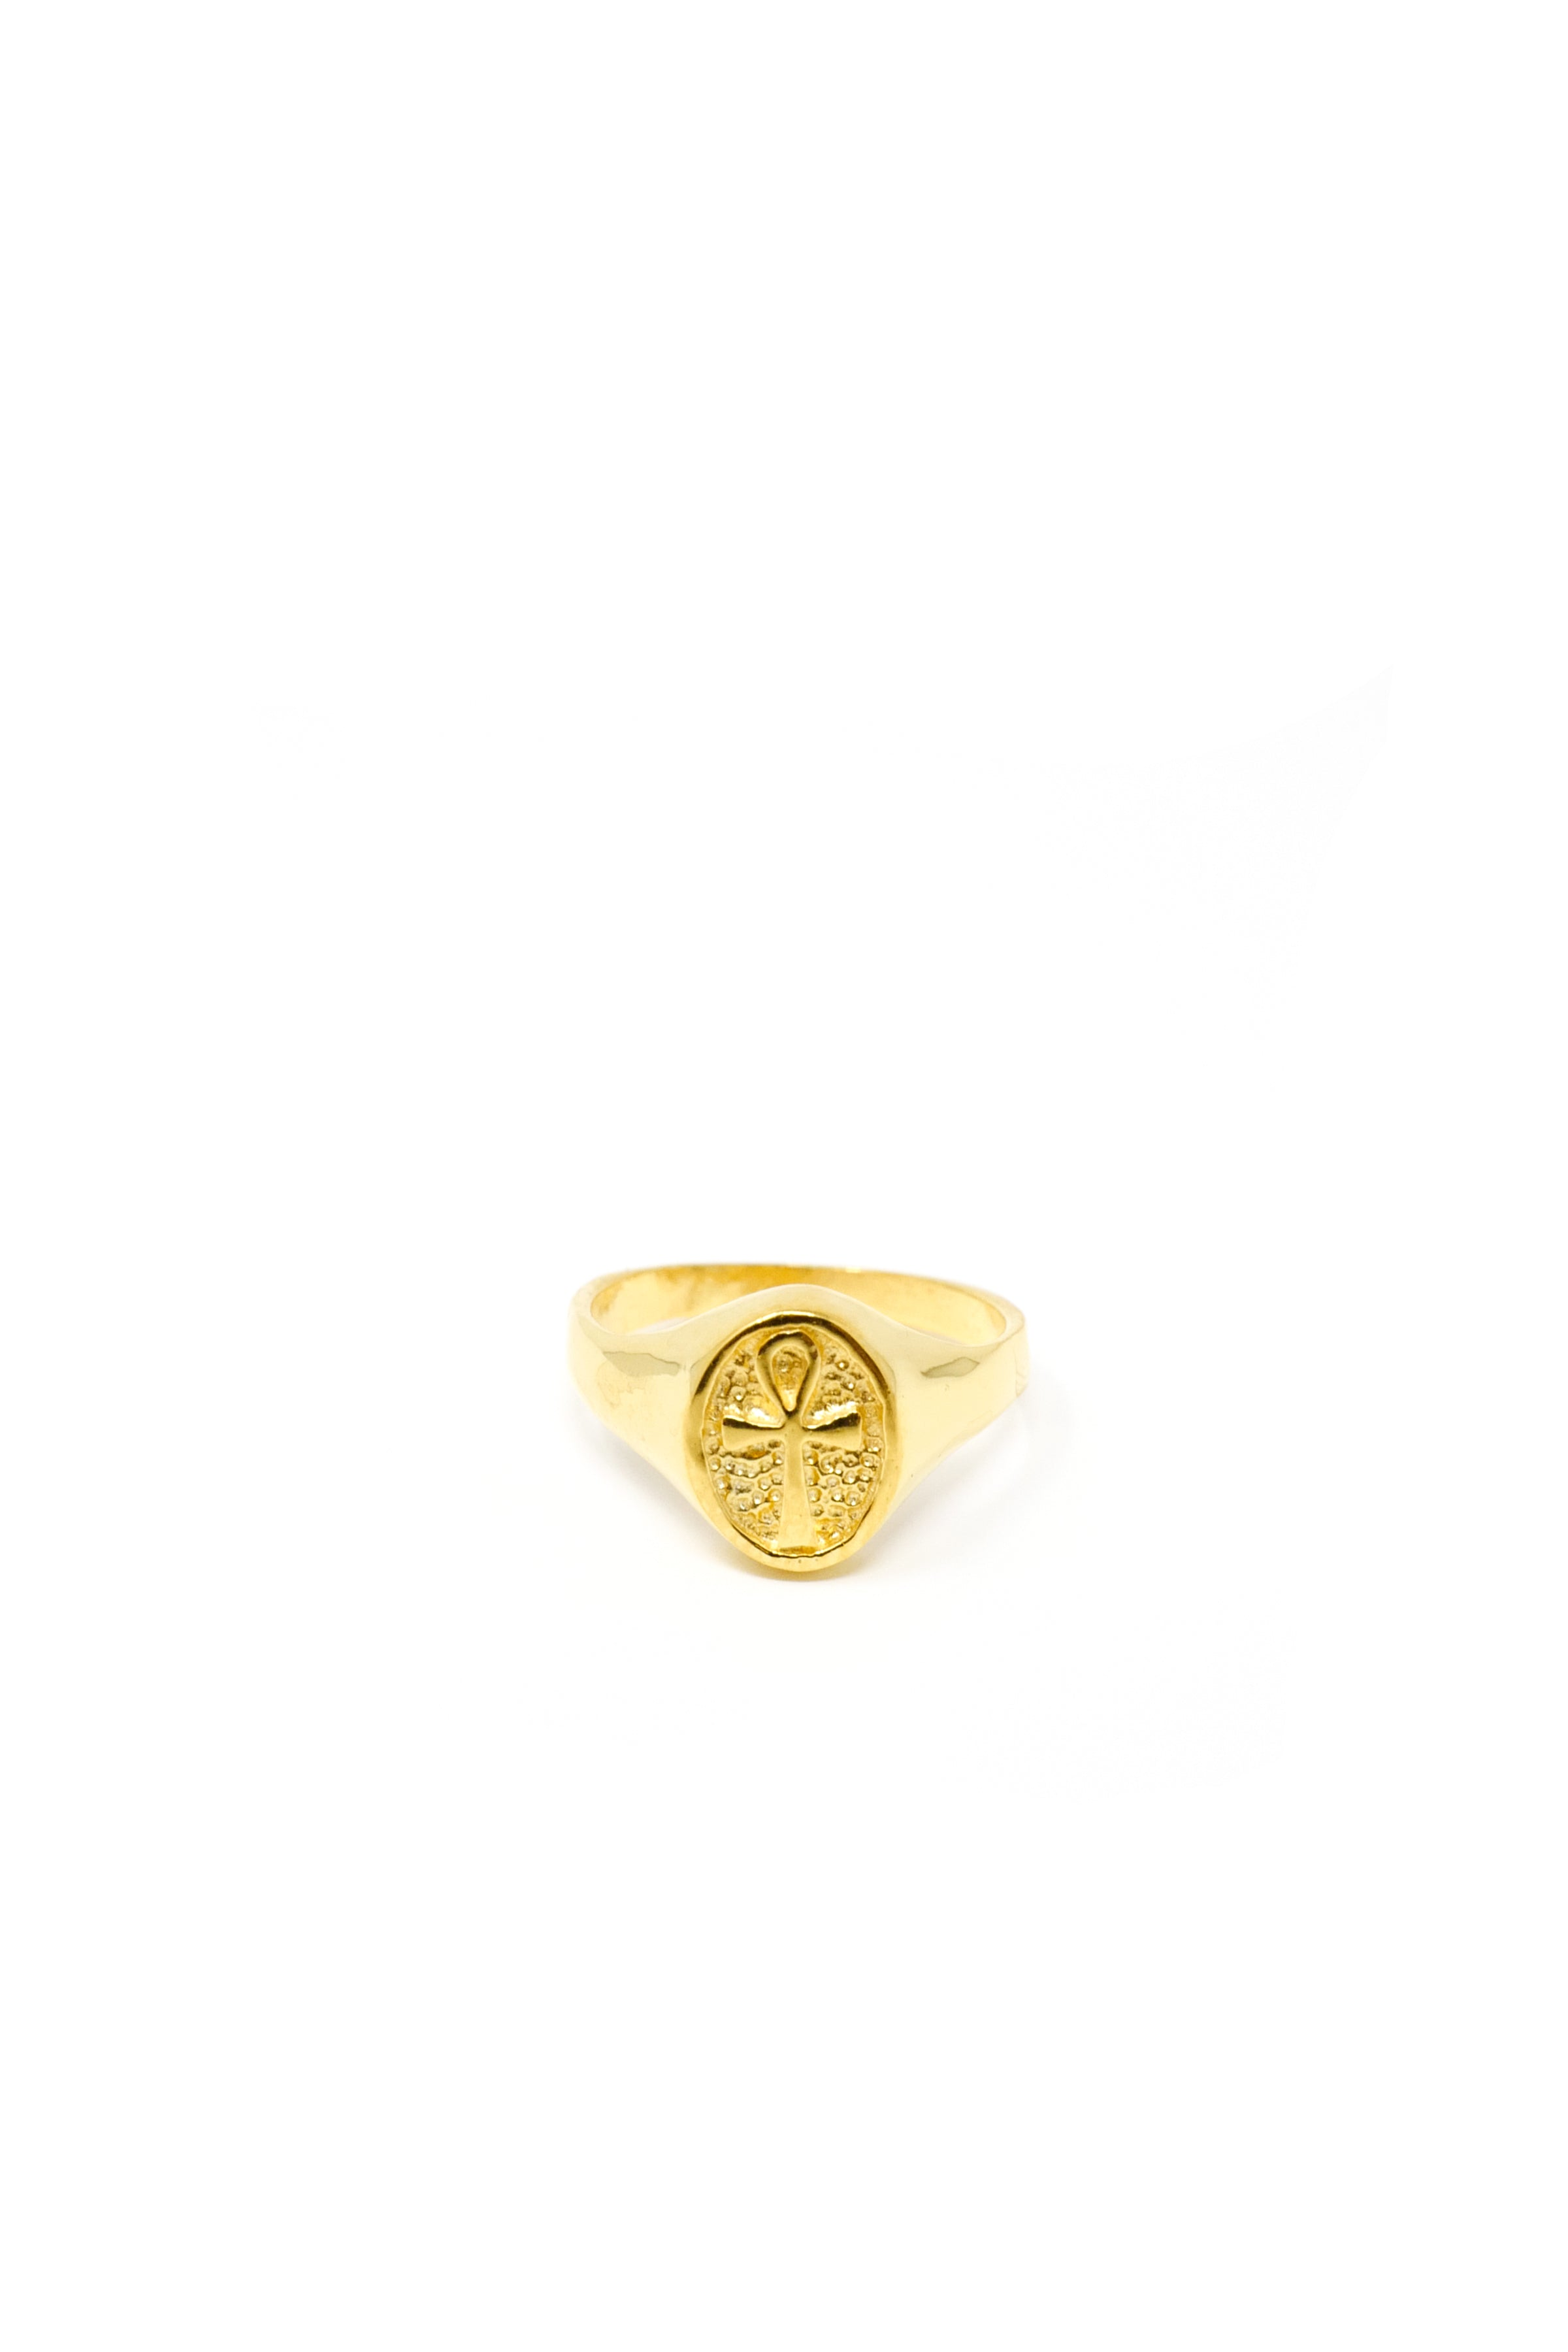 THE ANKH Signet Ring